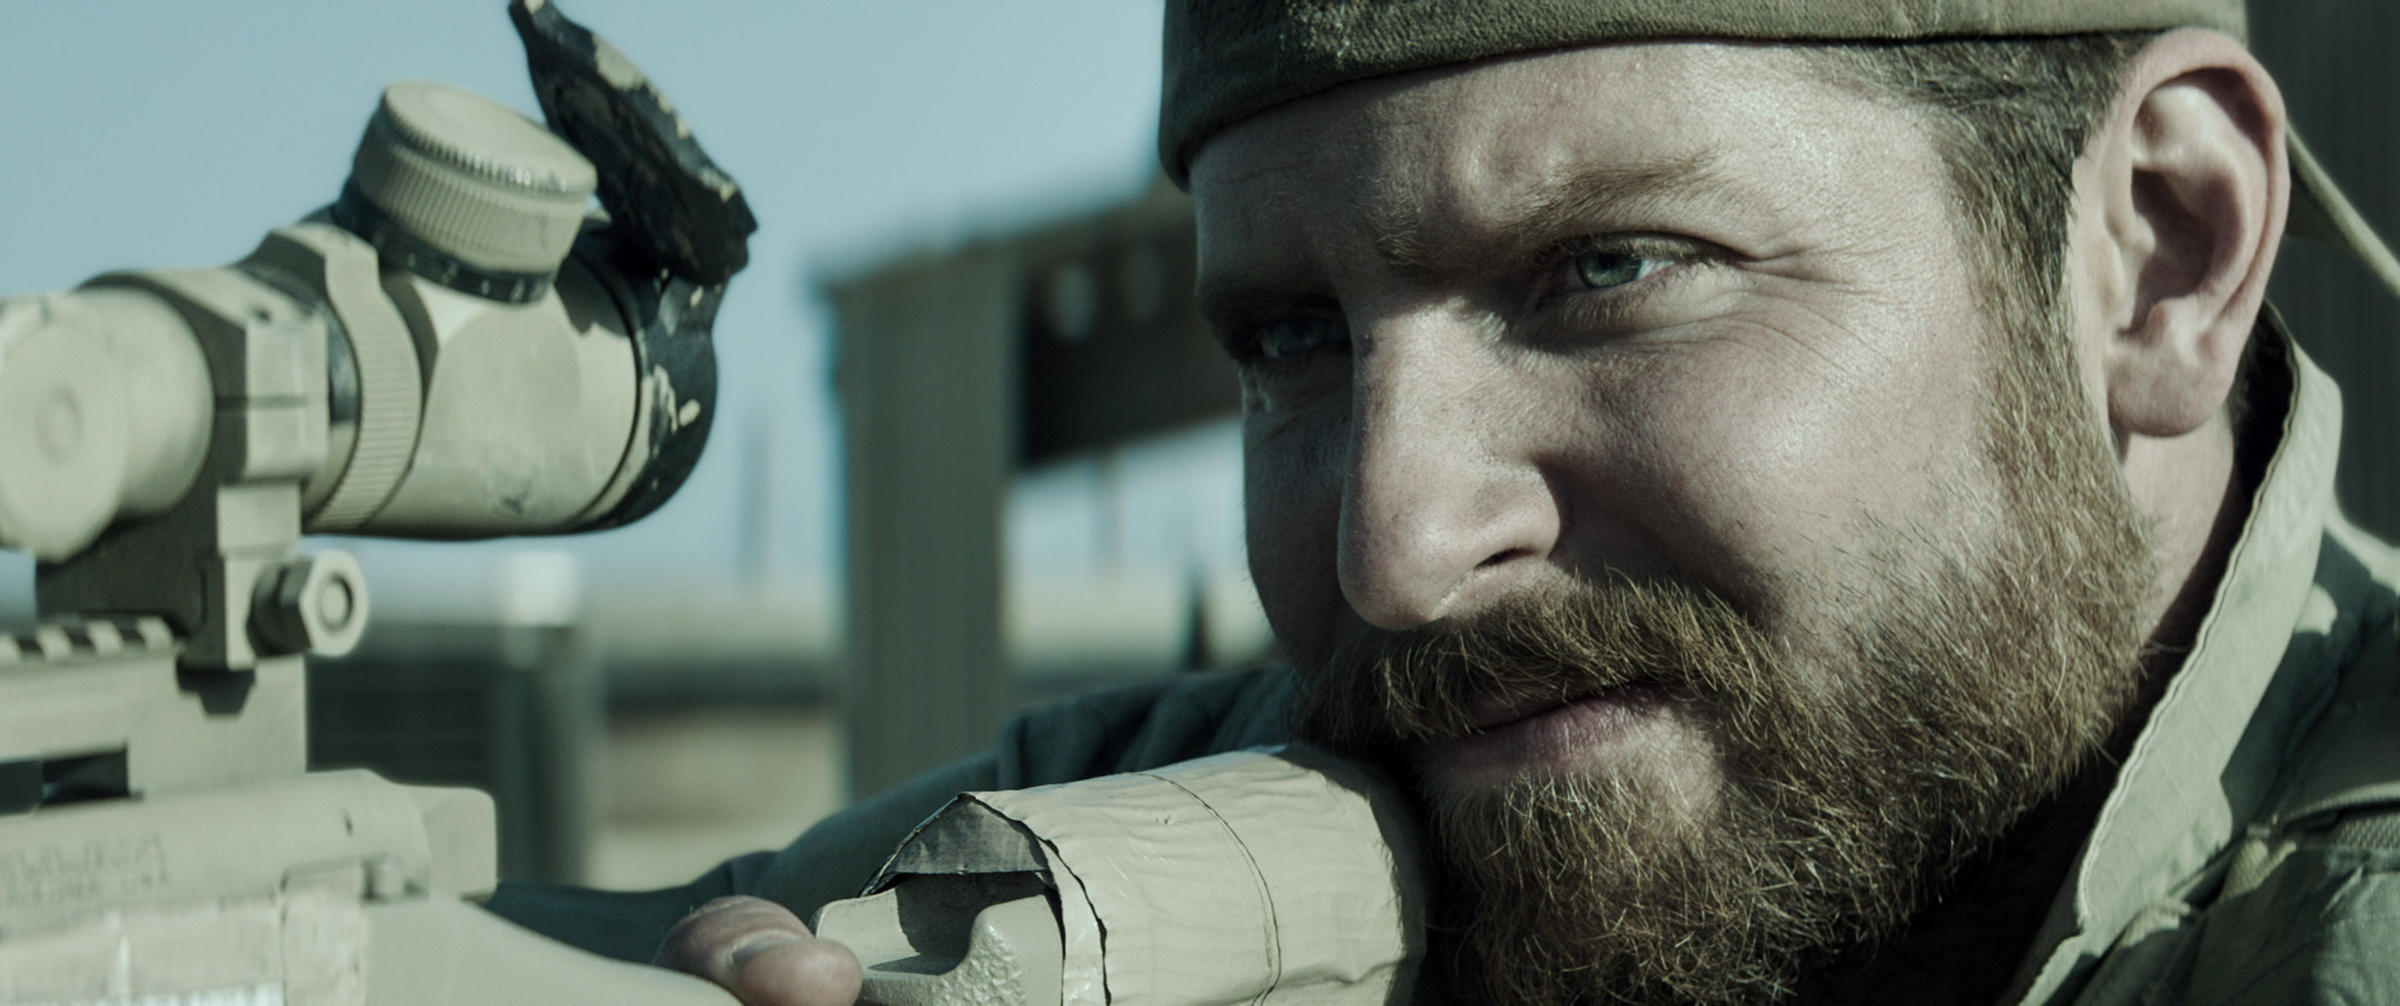 American Sniper' Exposes Unresolved Issues About The Iraq War | WYPR